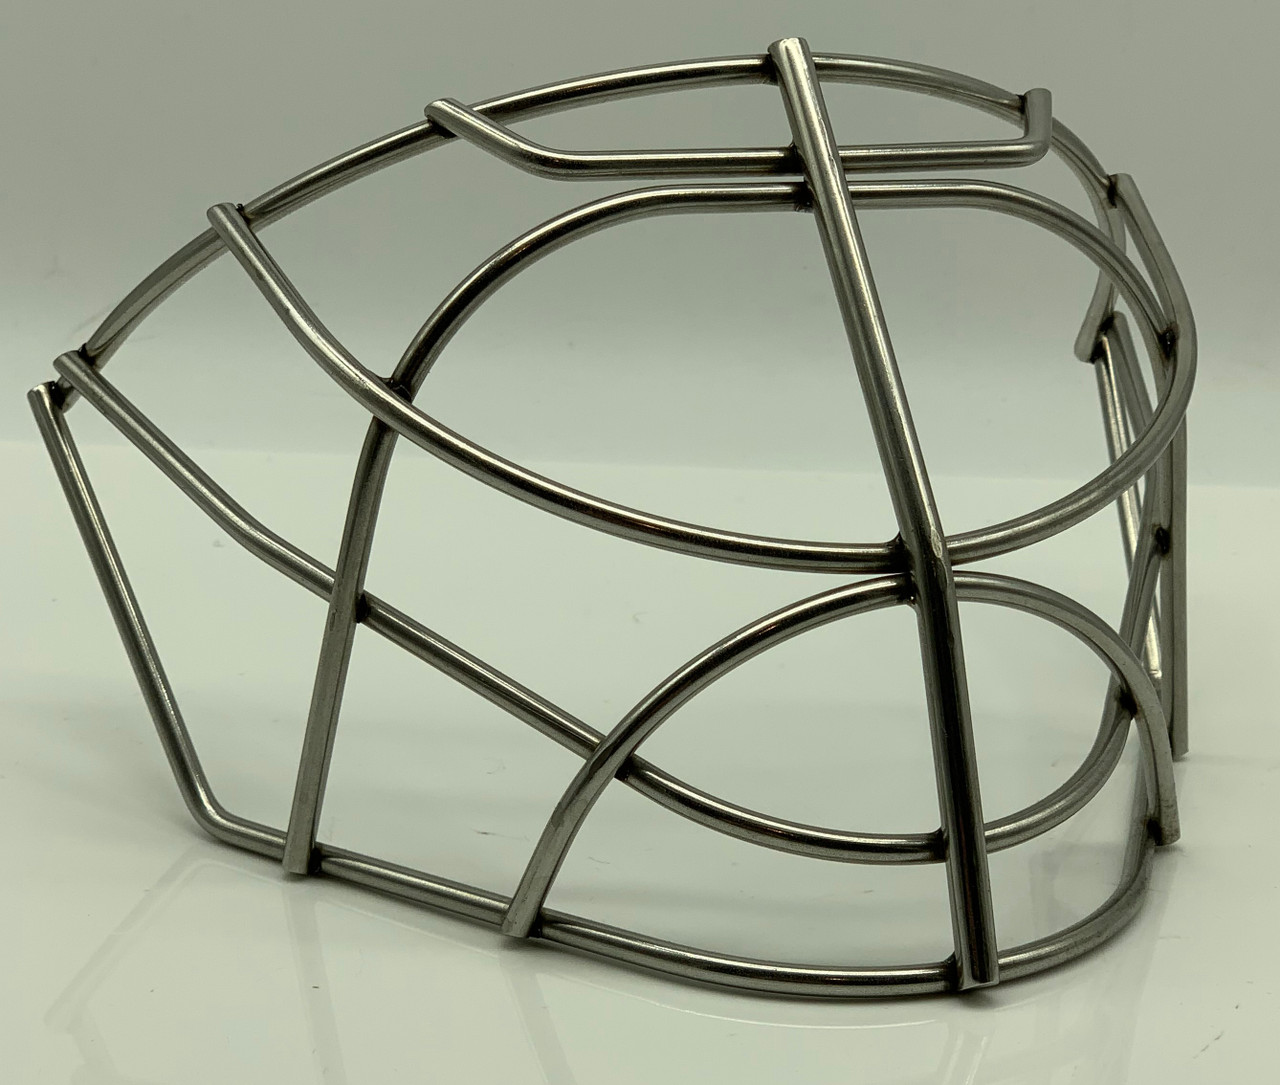 OTNY X1 Non-Certified Single Bar Cat-Eye Cage - Stainless Steel